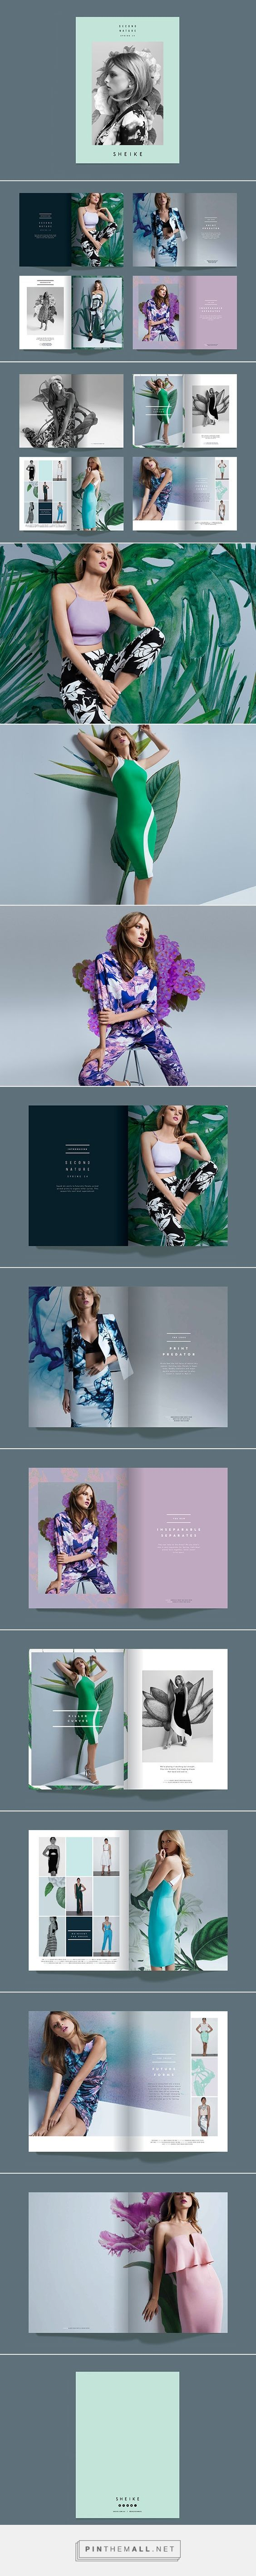 A successful brochure design is essential for a fashion company.